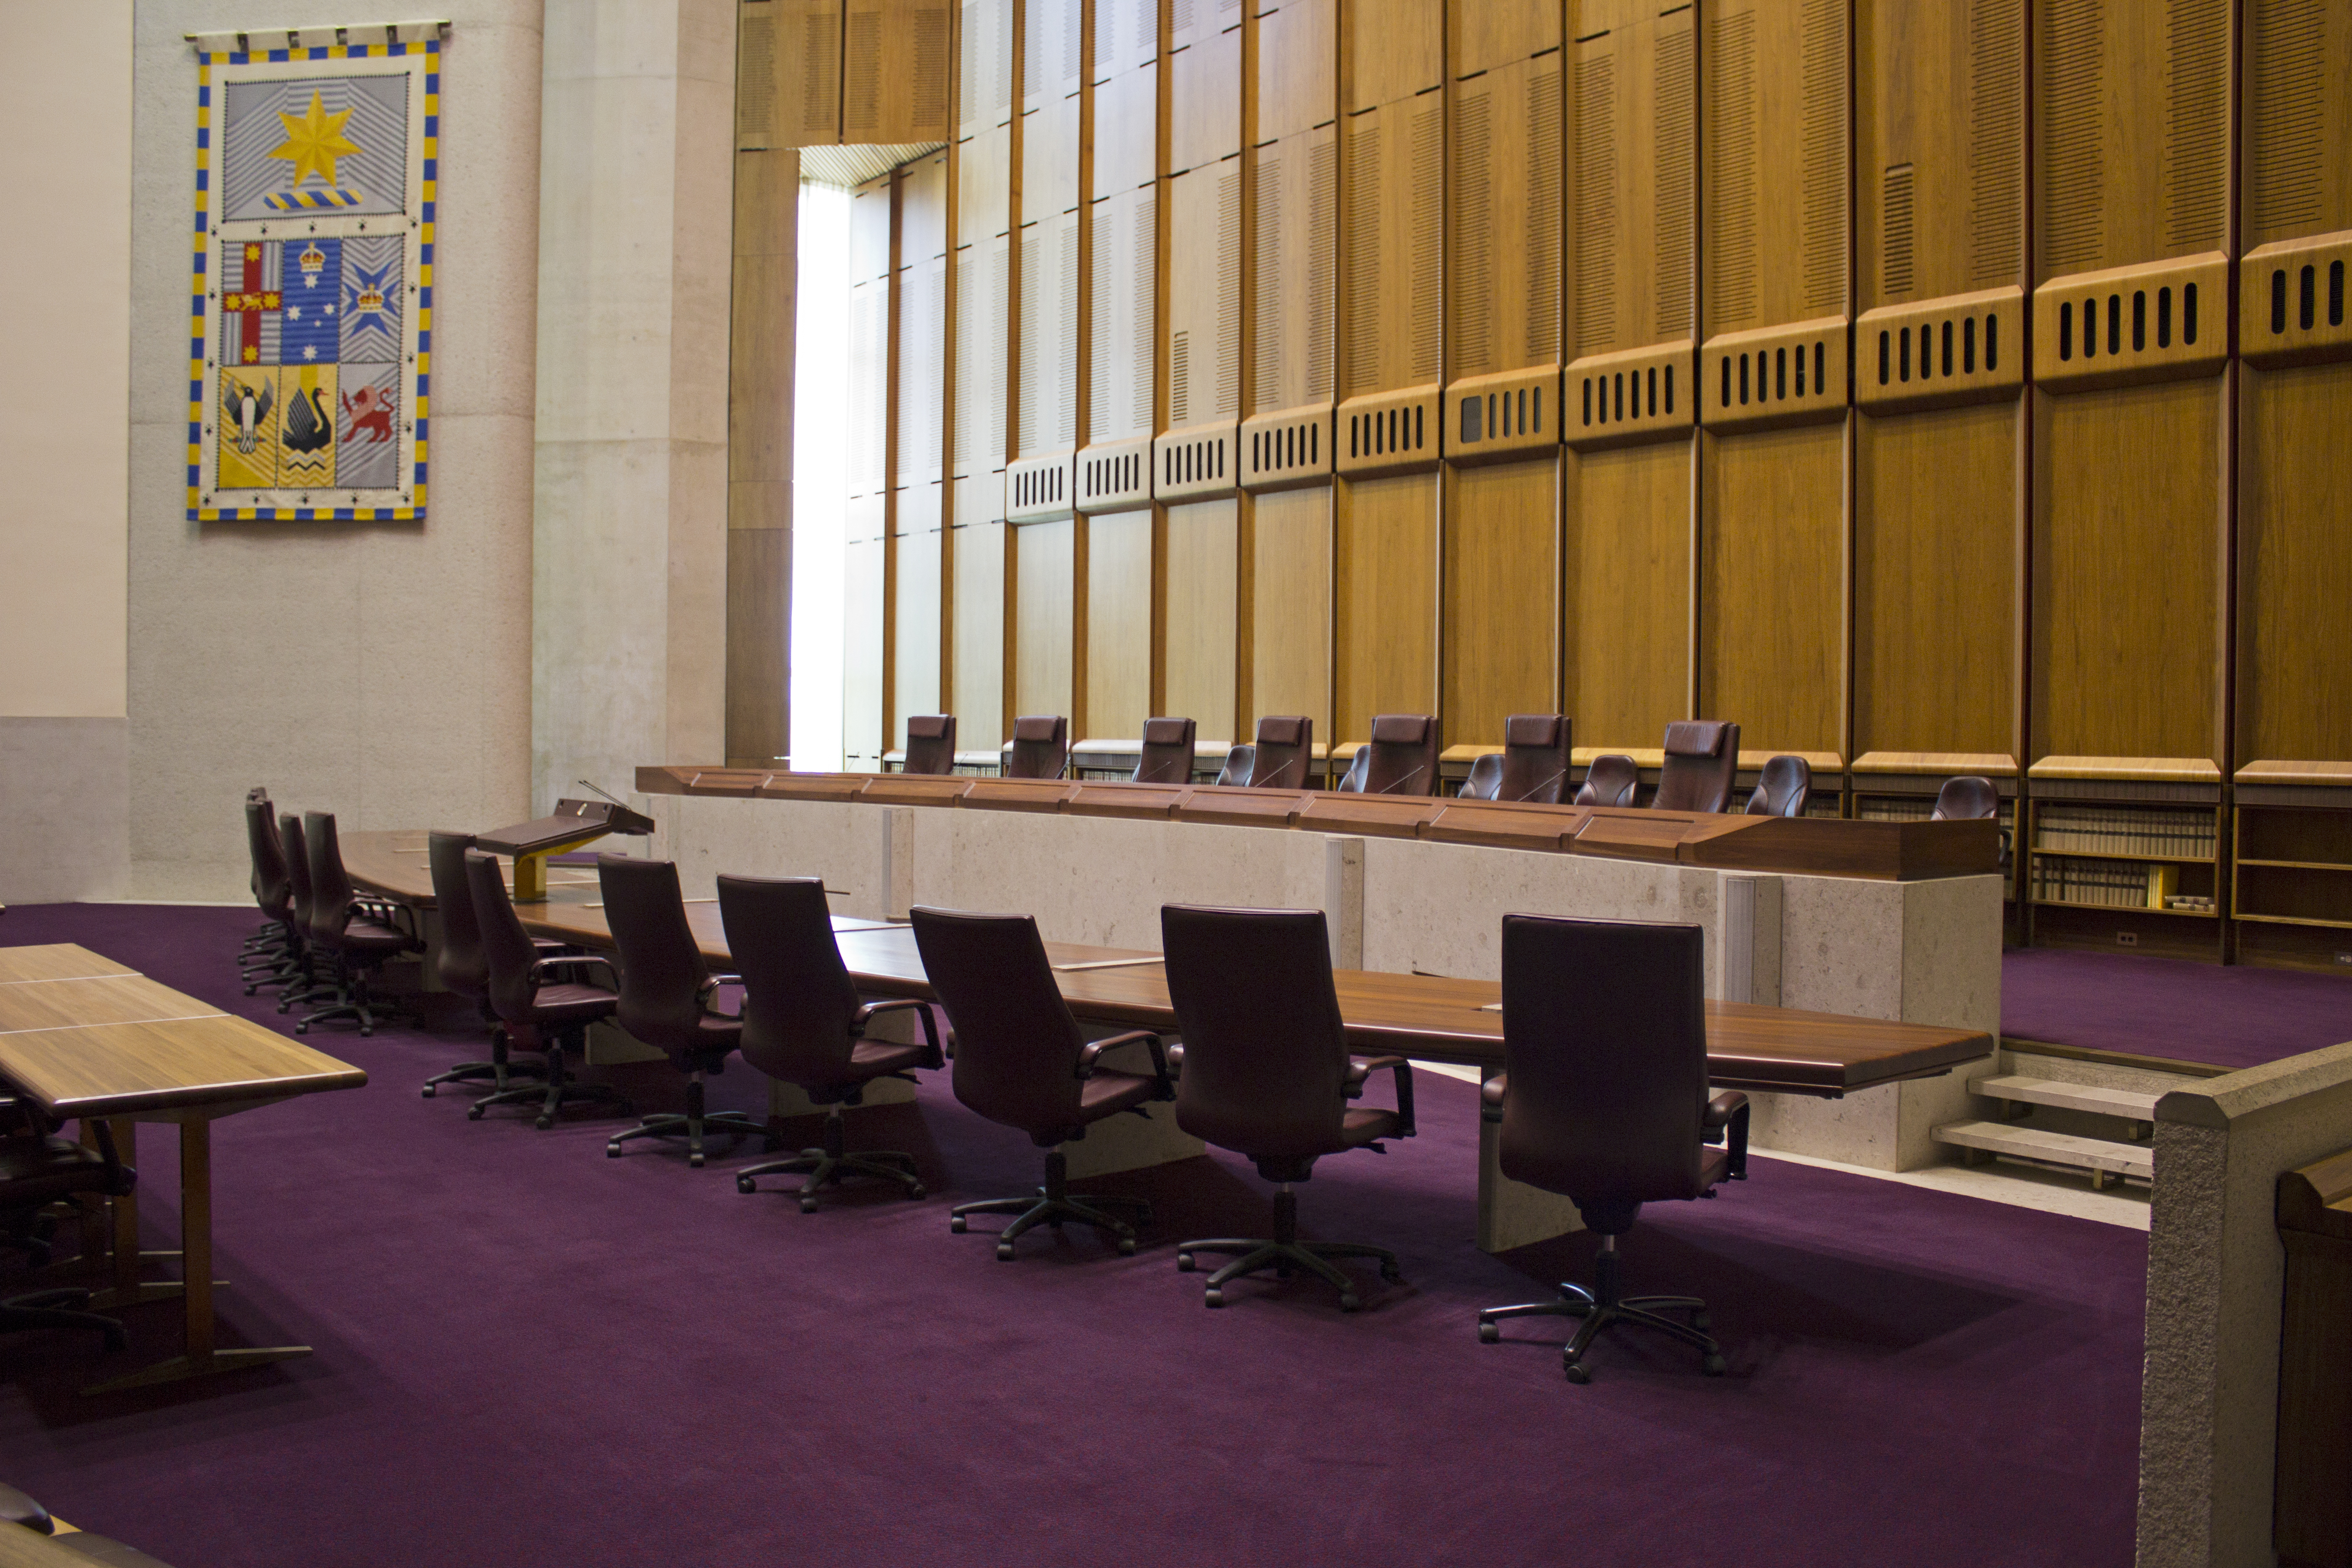 Court_1_at_the_High_Court_of_Australia